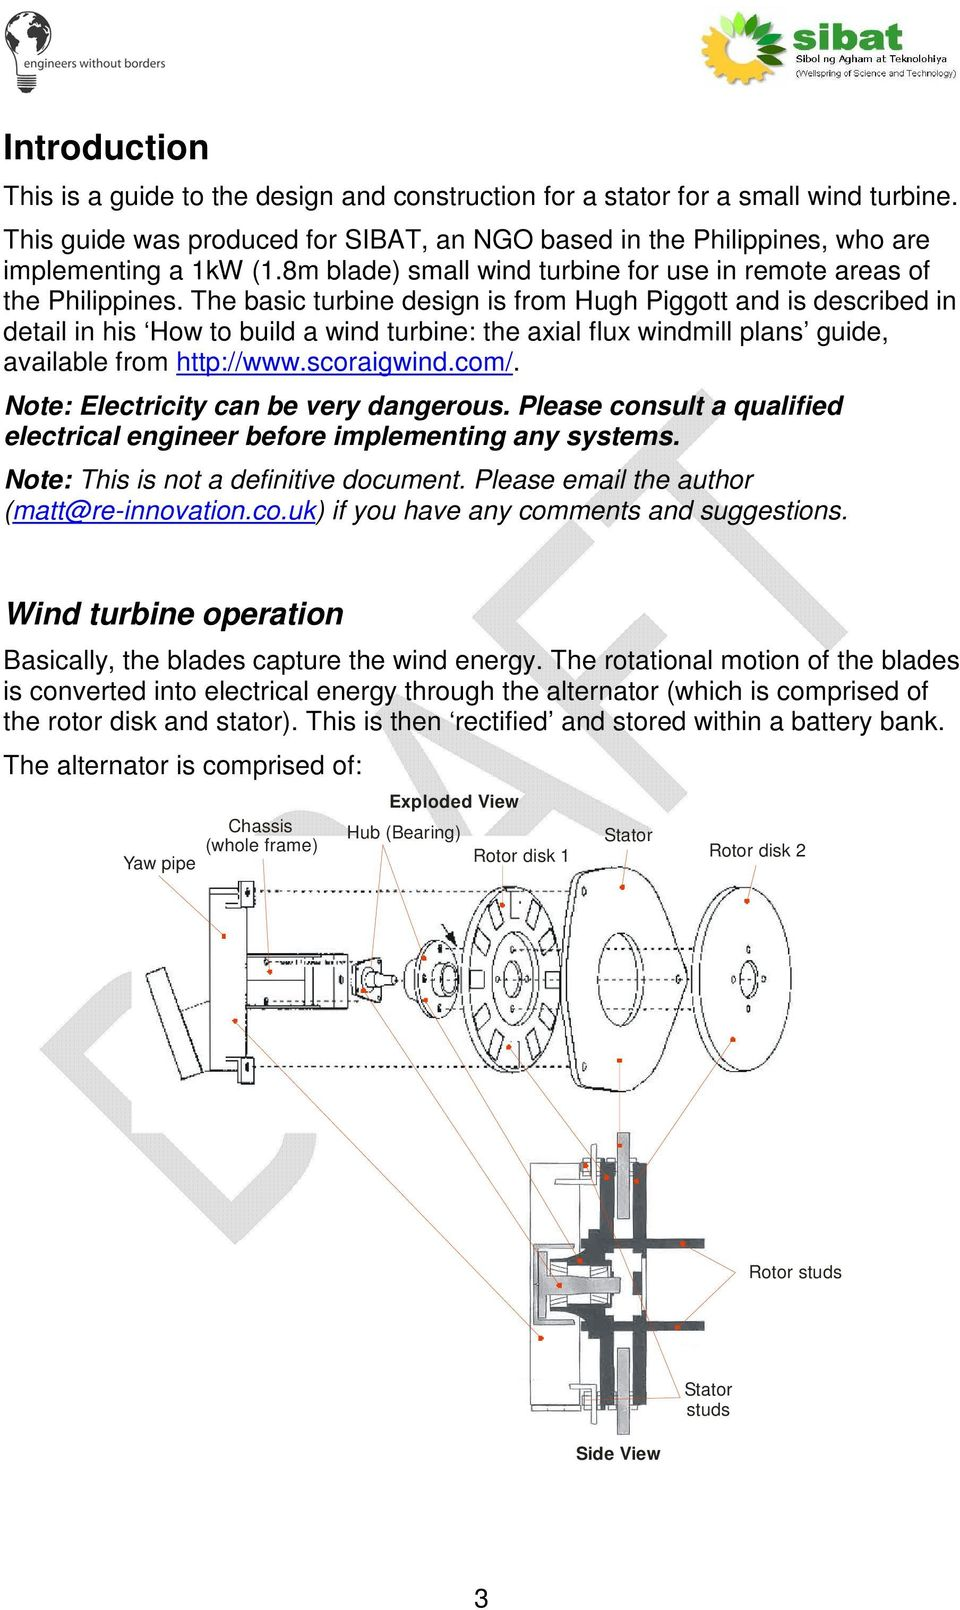 Wind Turbine Stator Design Guide Pdf Diy Wiring Diagrams The Basic Is From Hugh Piggott And Described In Detail His How